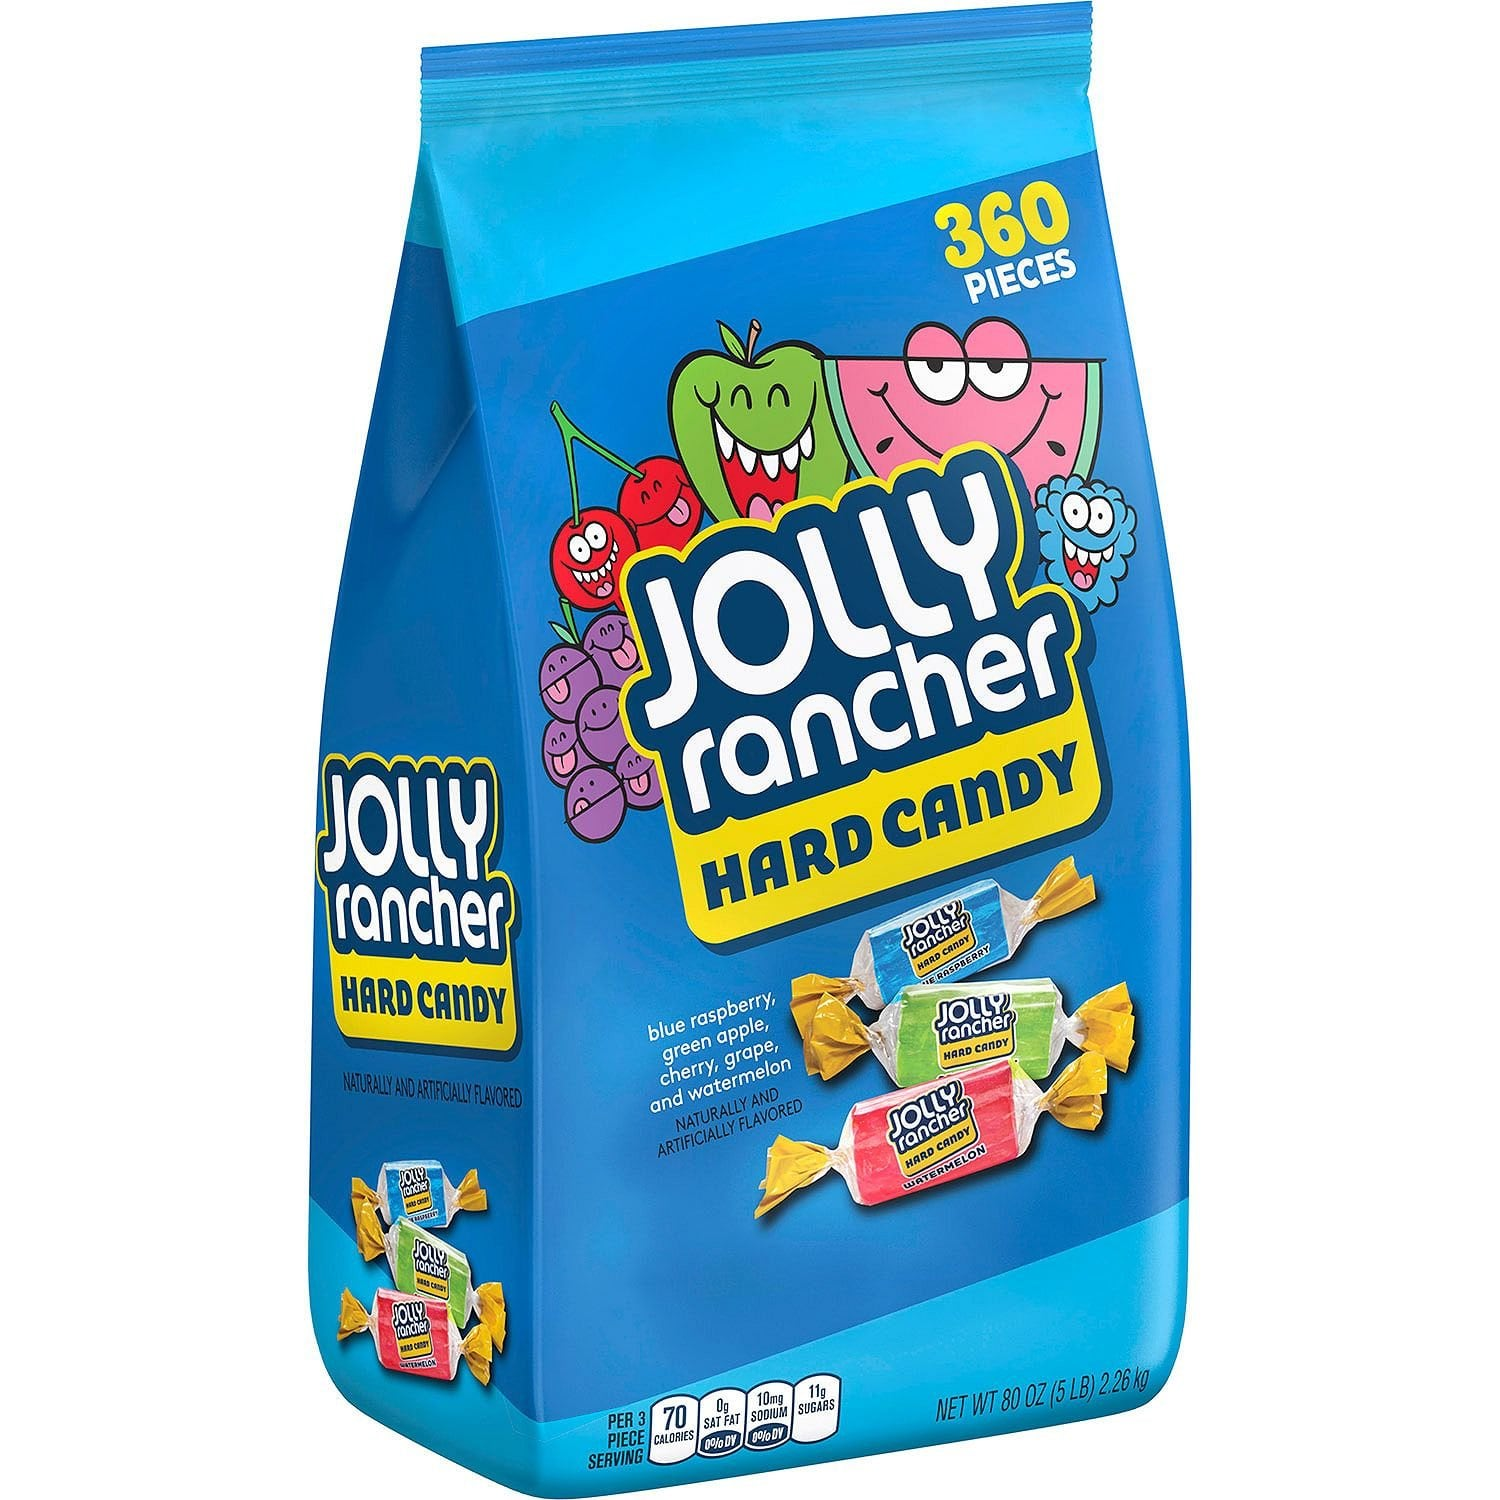 JOLLY RANCHER Hotties Sweet and Spicy Hard Candy, 13 Ounce Bag - $2.36 or Less w/S&S $2.11